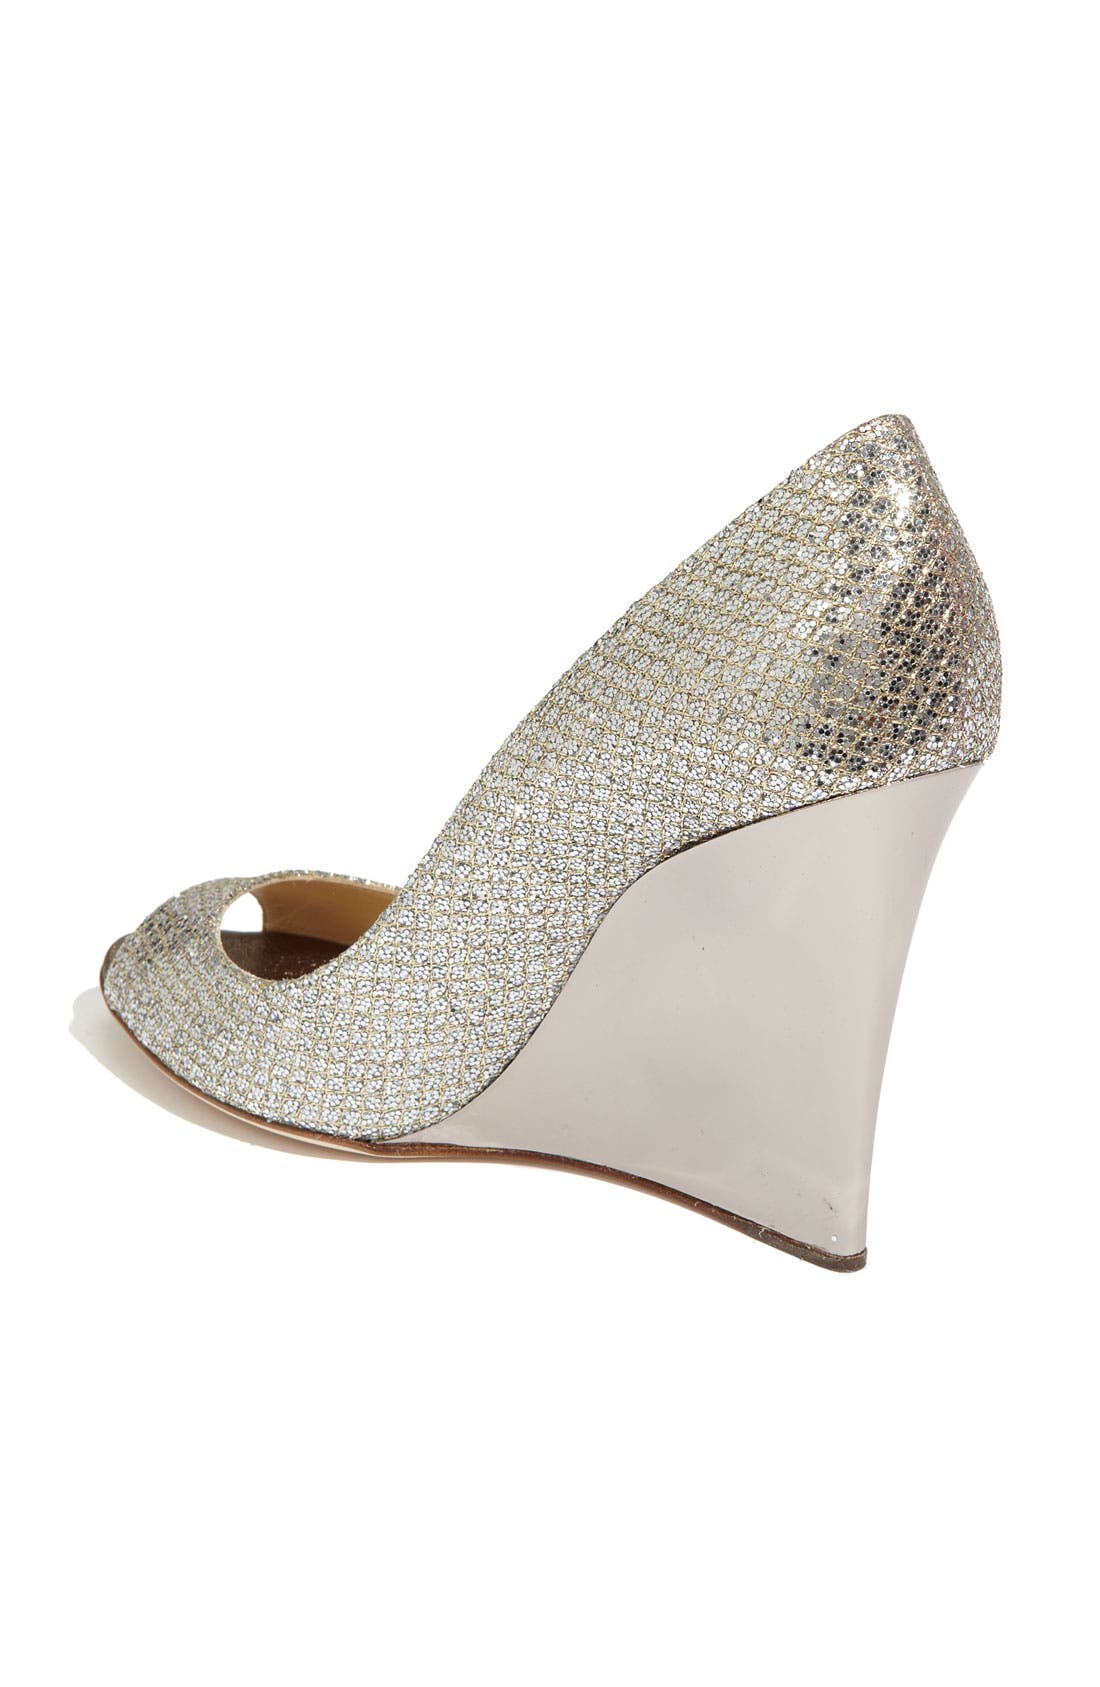 Alternate Image 2  - Jimmy Choo 'Bello' Glitter Wedge